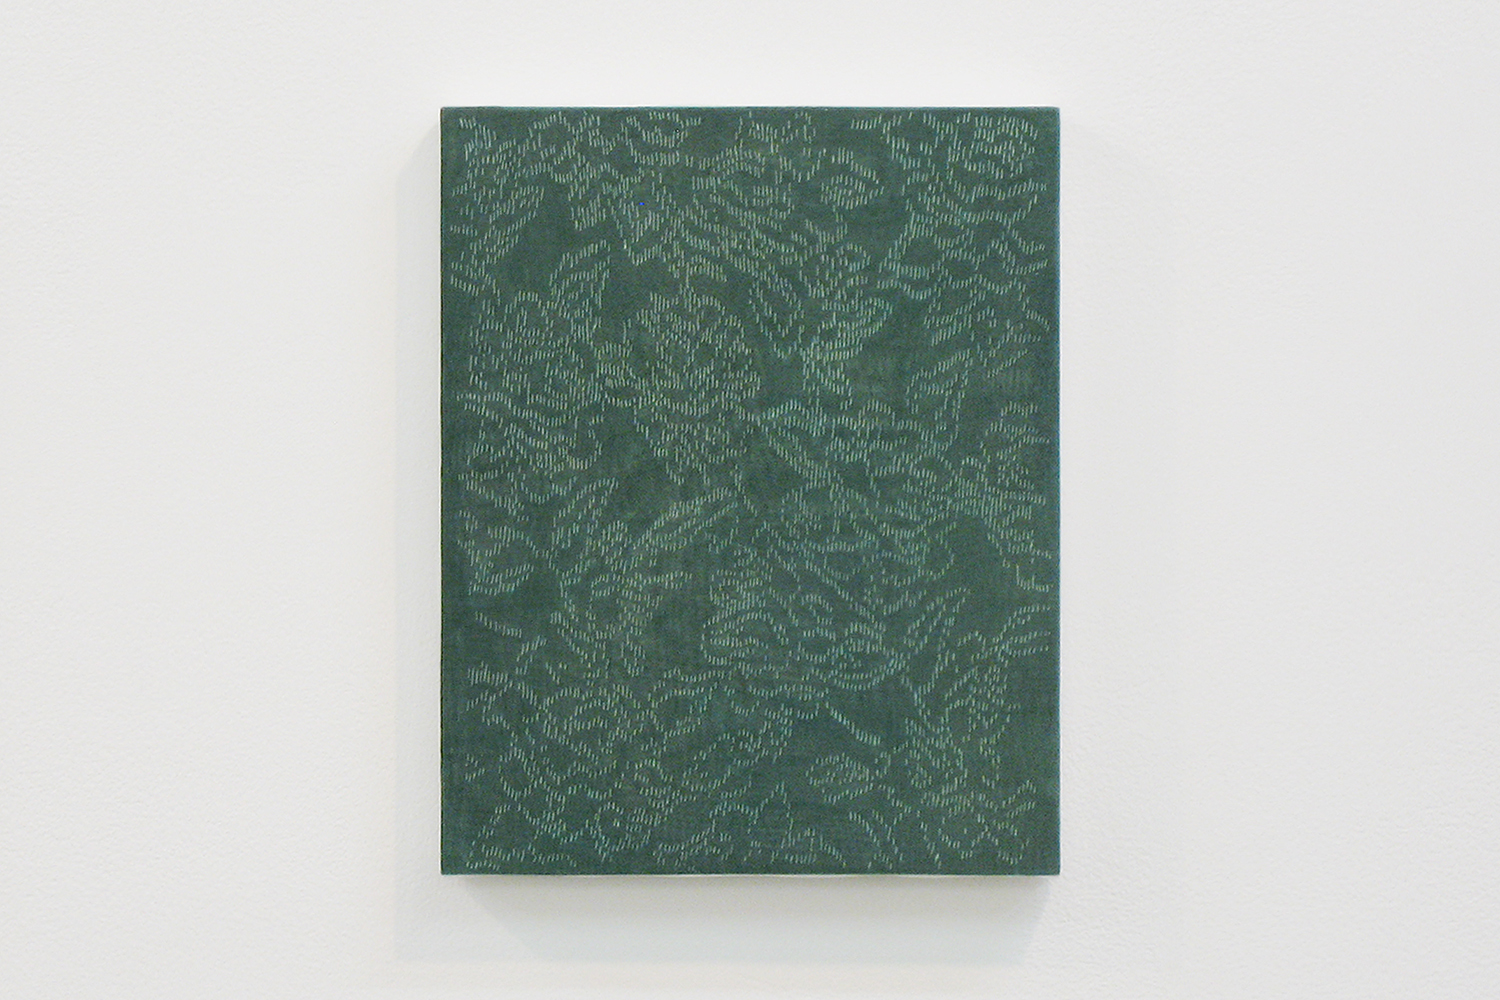 lace G|panel, stainless steel sheet, glass organdy, acrylic|273  x 220 mm|2009